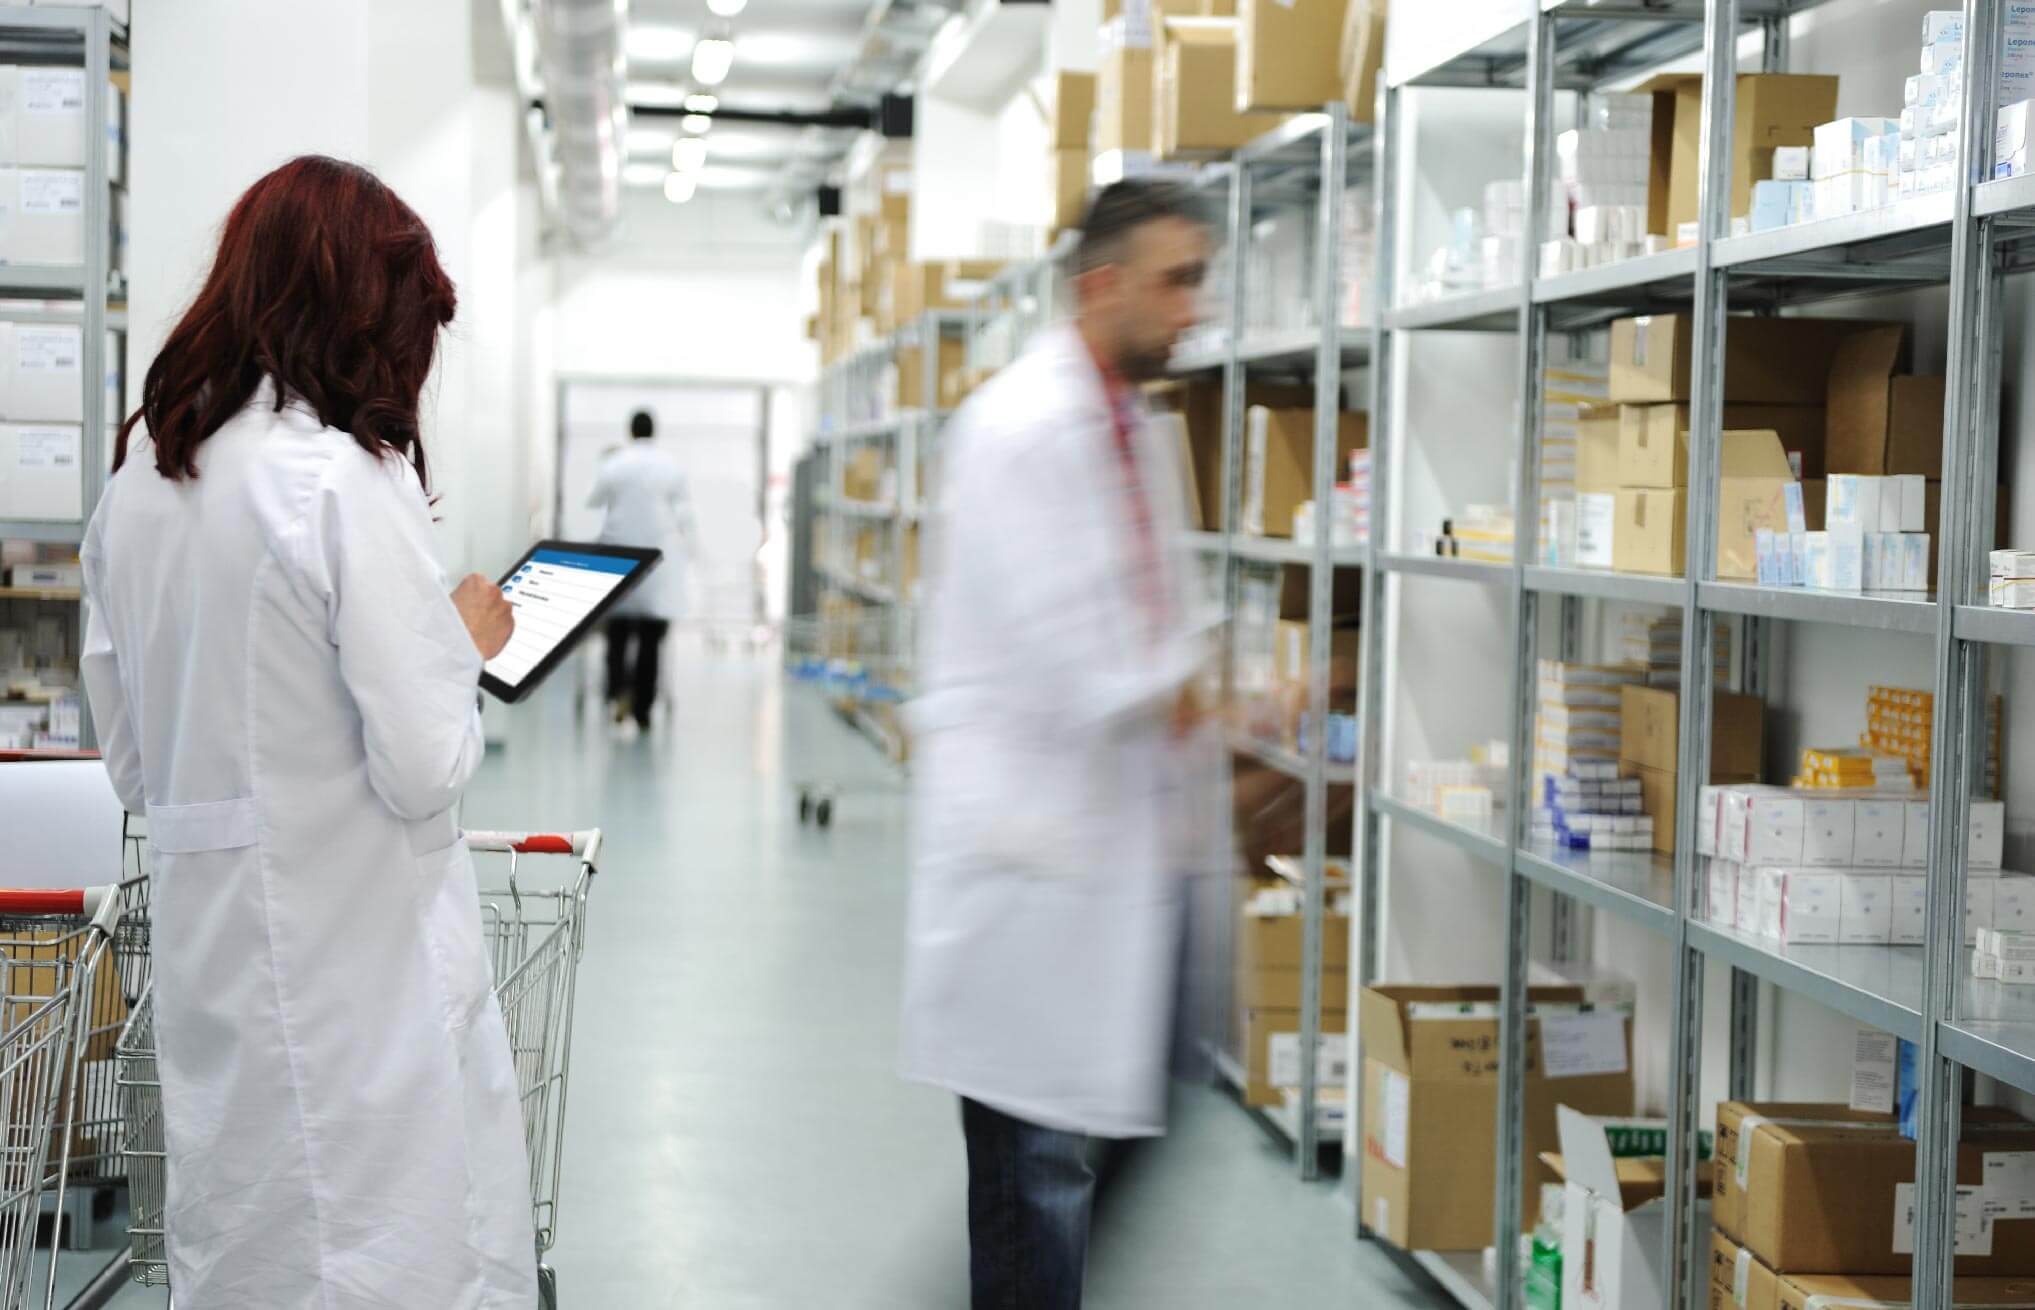 inventory system medical supply image